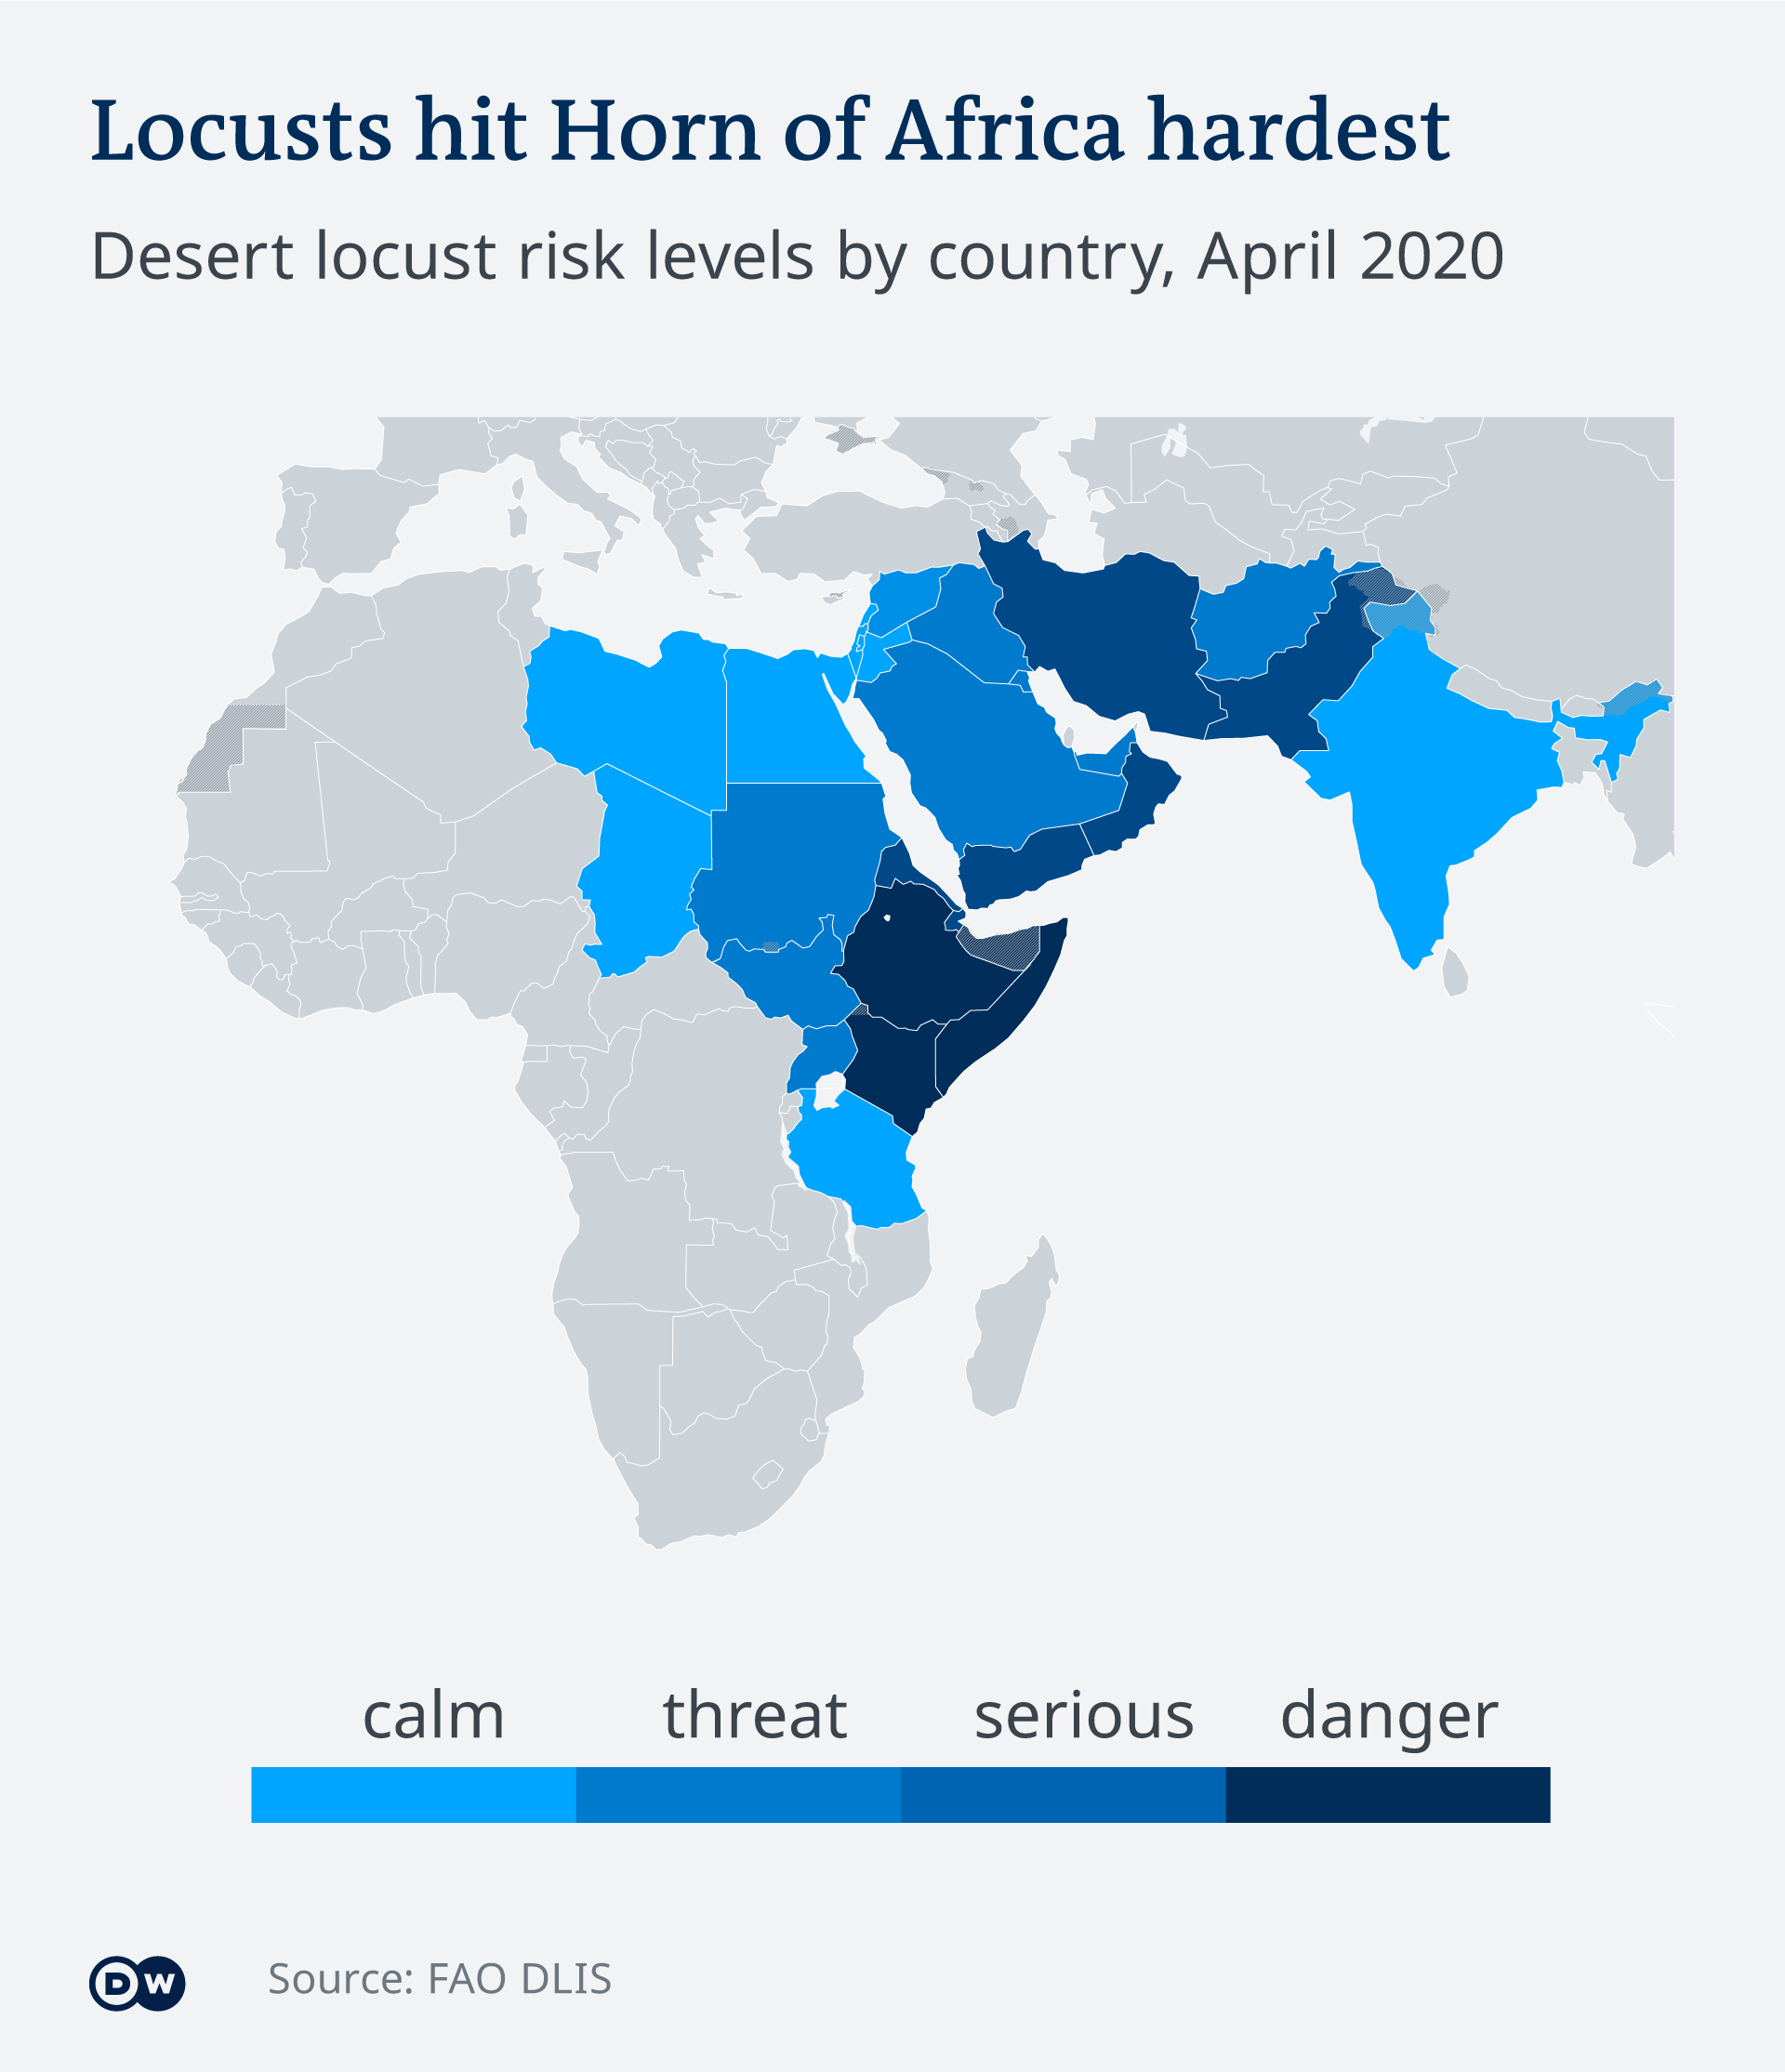 Map Locust threat level by country East Africa